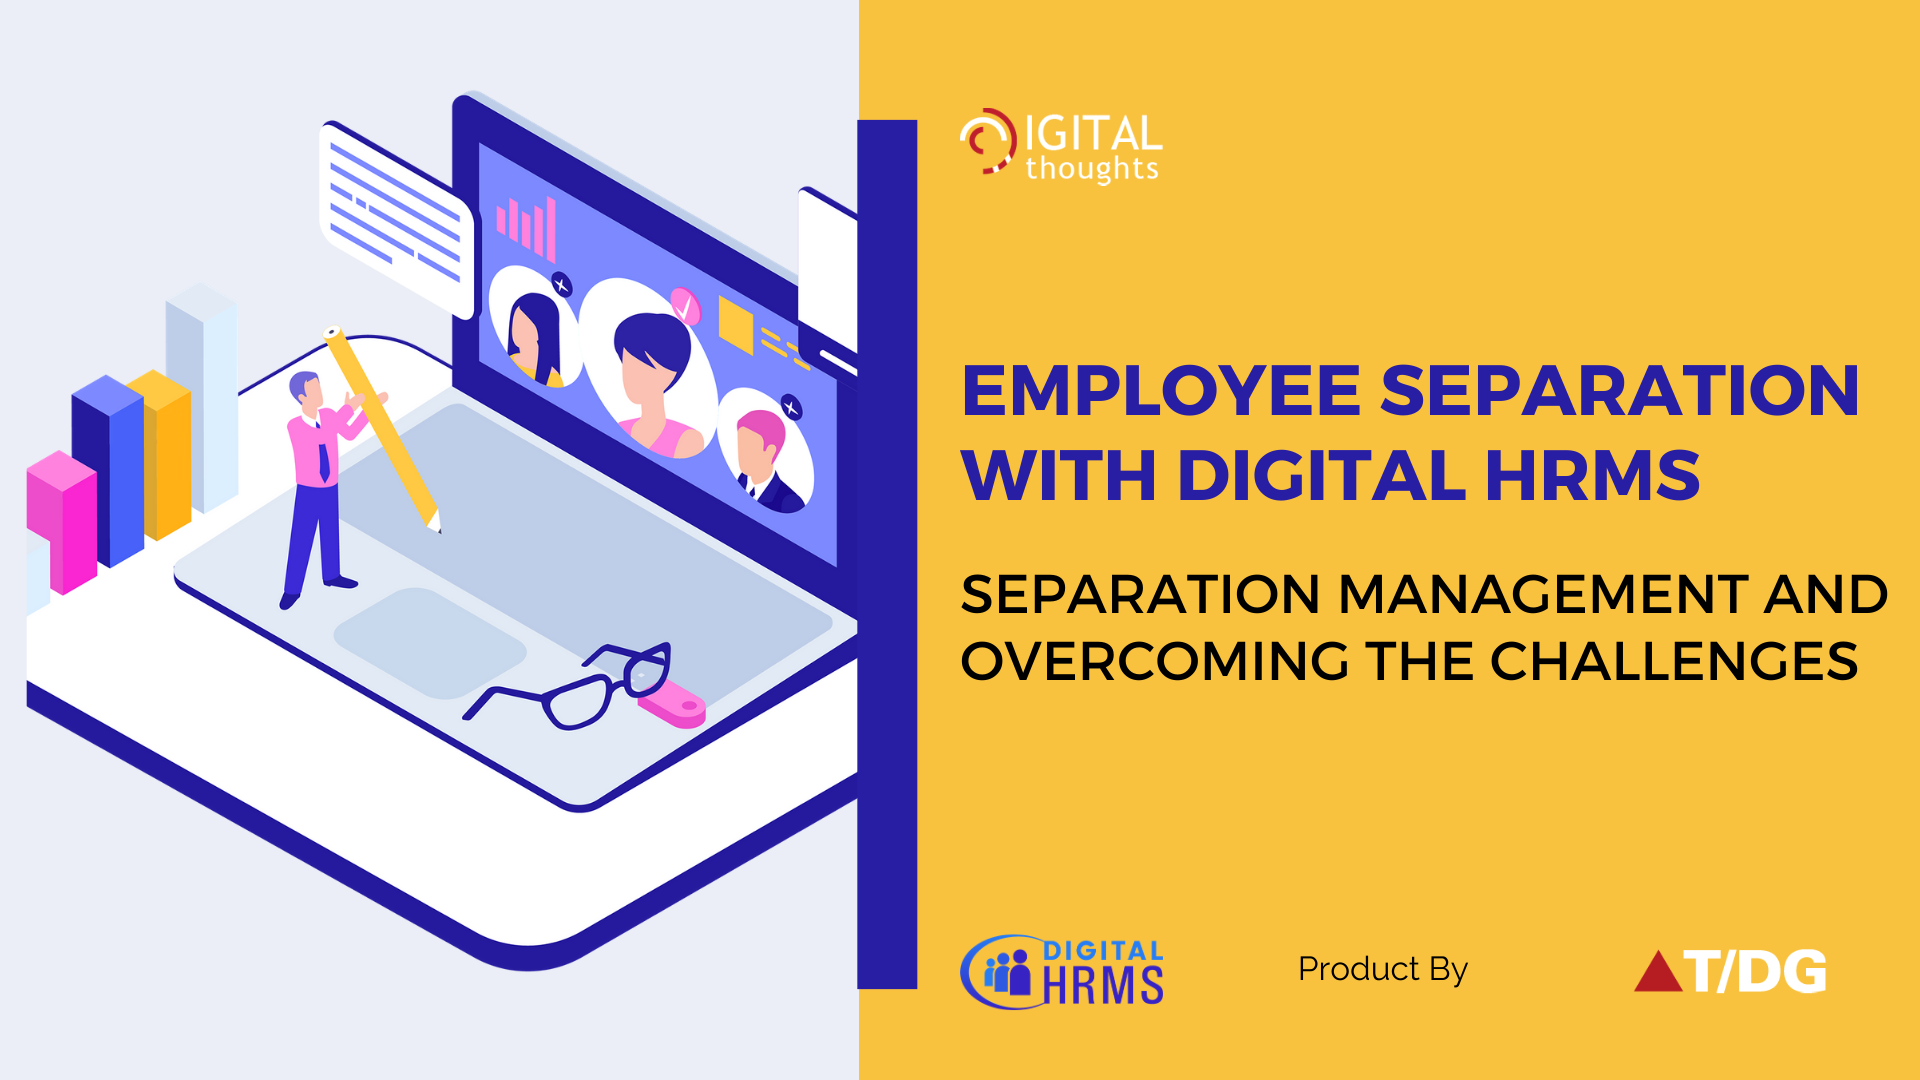 Employee Separation with Digital HRMS: Separation Management and Overcoming the Challenges